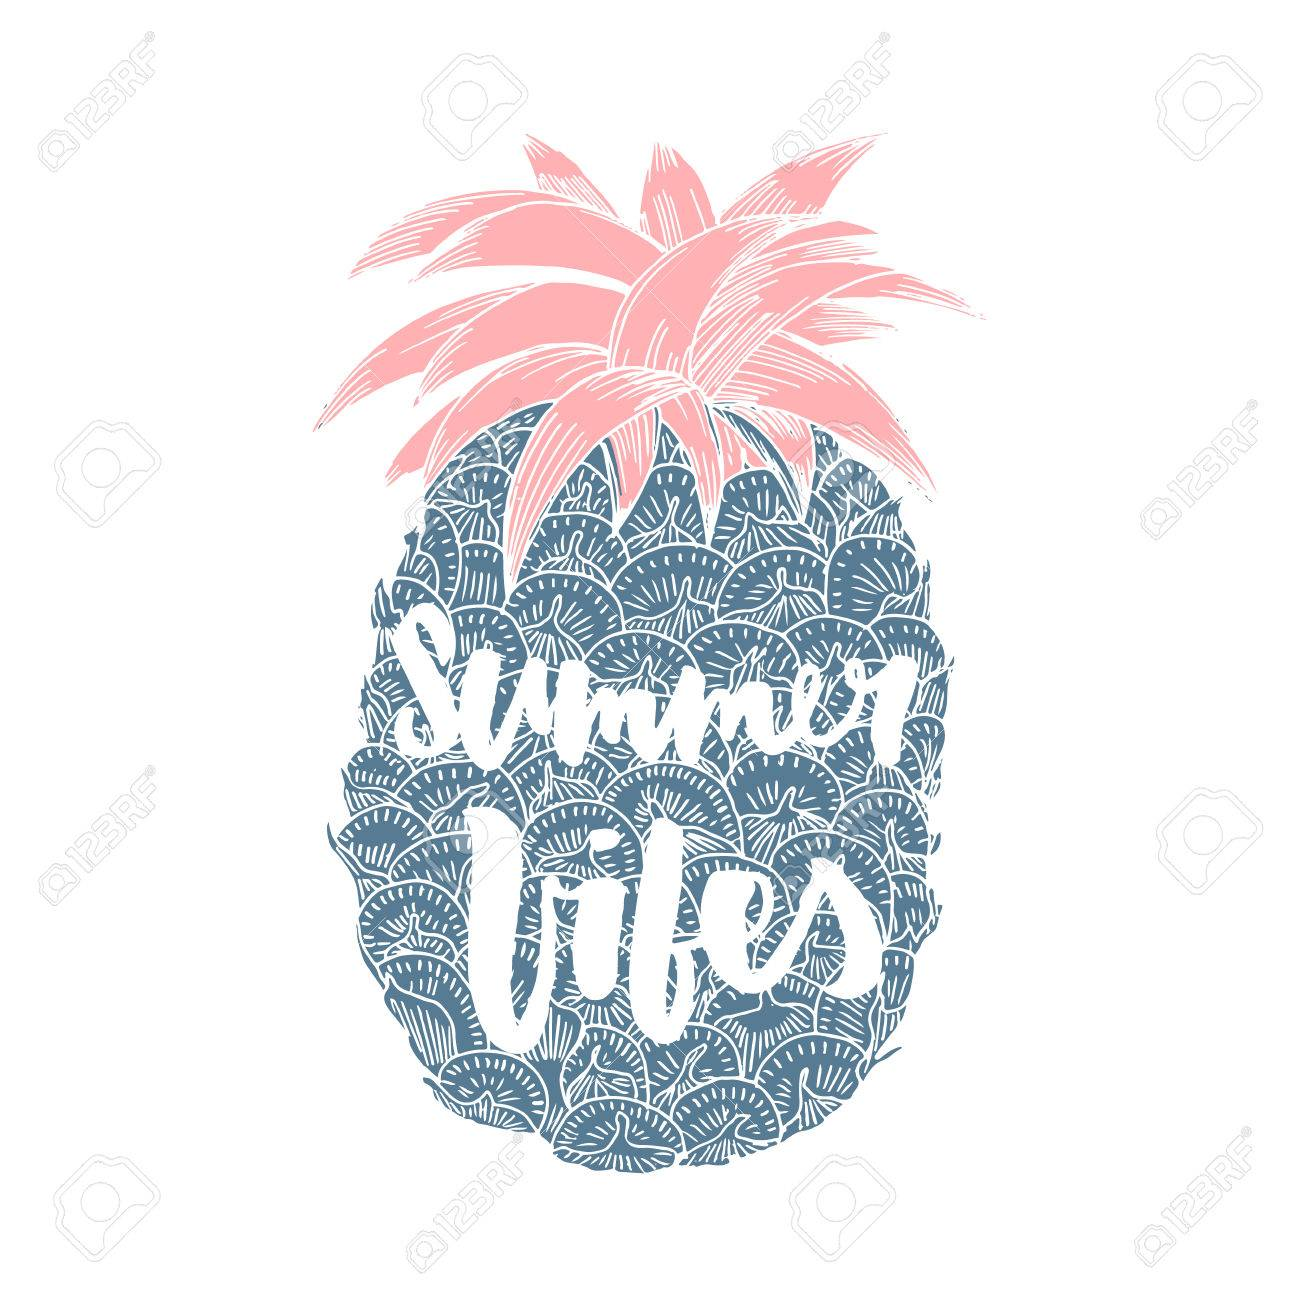 Summer Vibes Hand Written Lettering Quote For Poster Card